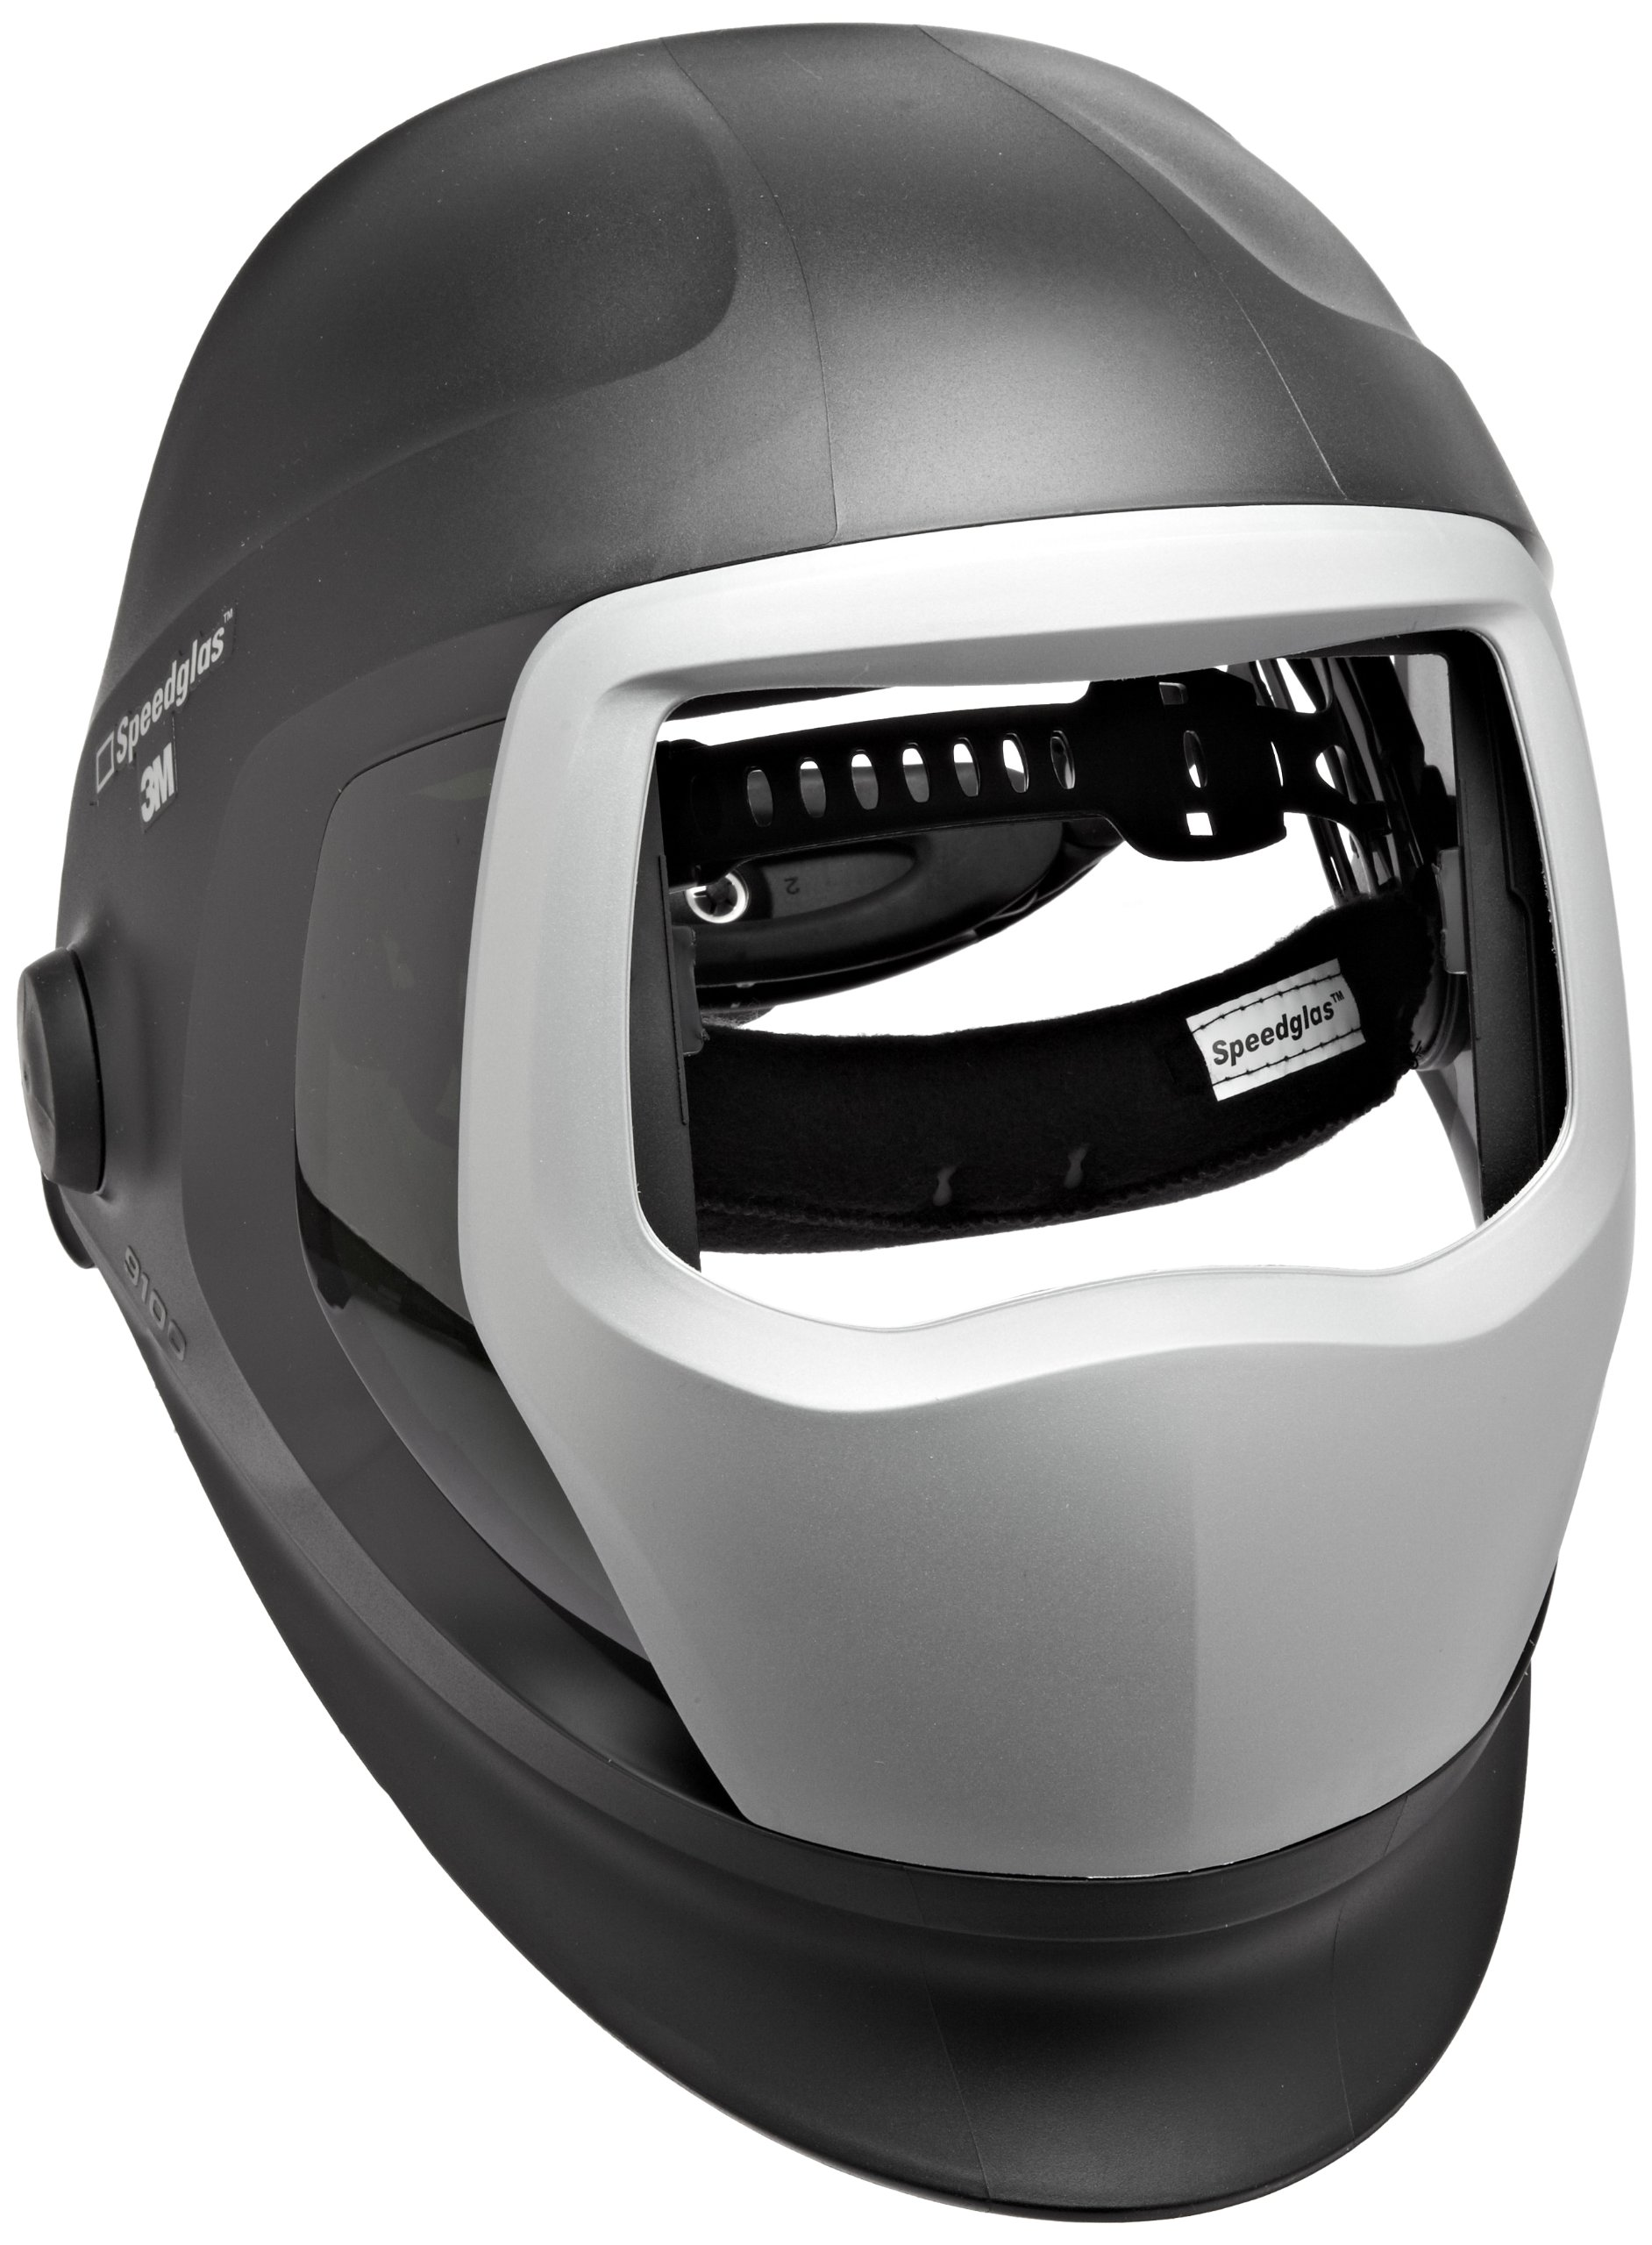 3M Speedglas Helmet 9100, Welding Safety 06-0300-51SW, Replacement Kit with SideWindows, Headband and Silver Front Panel